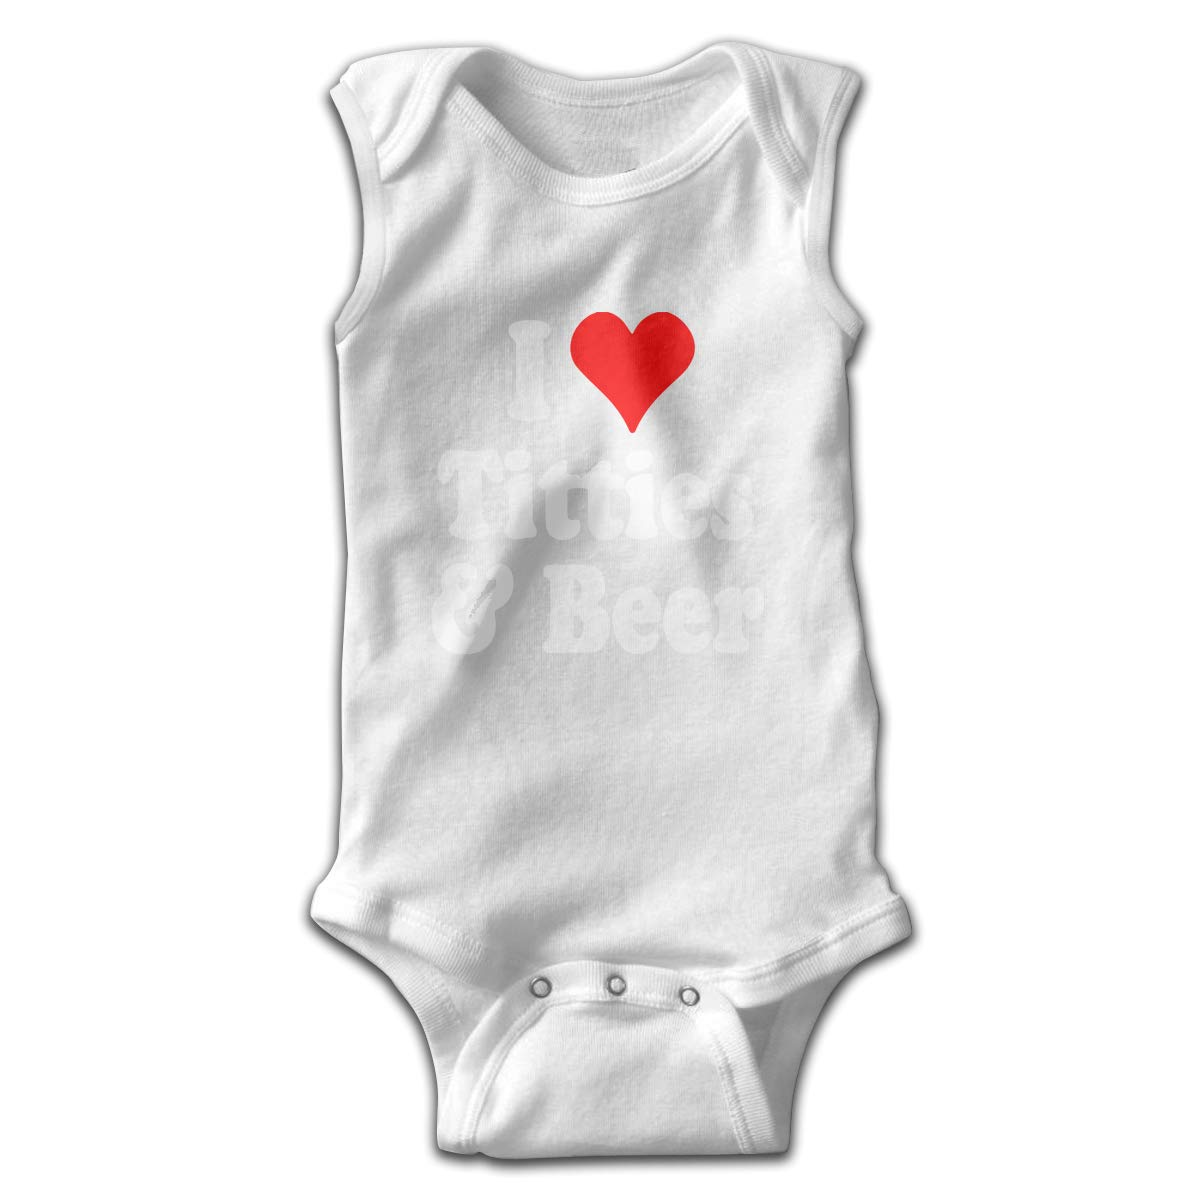 H@PAPA01 Heart Titties and Beer Baby Boys Sleeveless Romper Jumpsuit